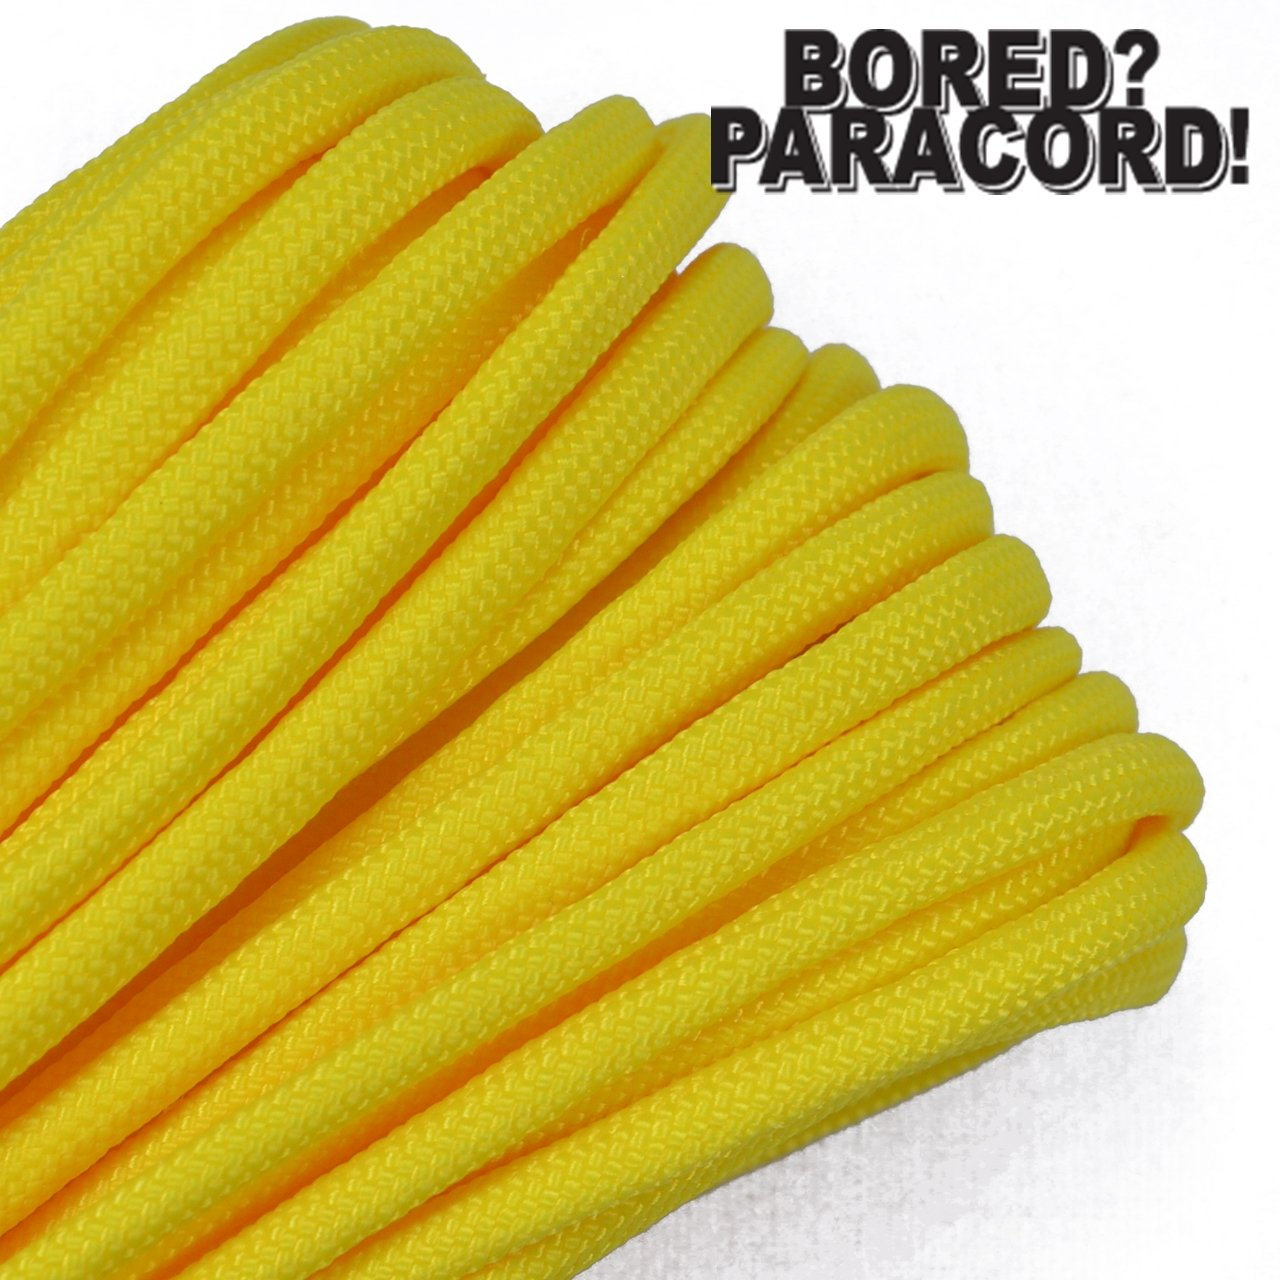 100 ft Over 300 Colors BoredParacord Brand 550 lb Paracord